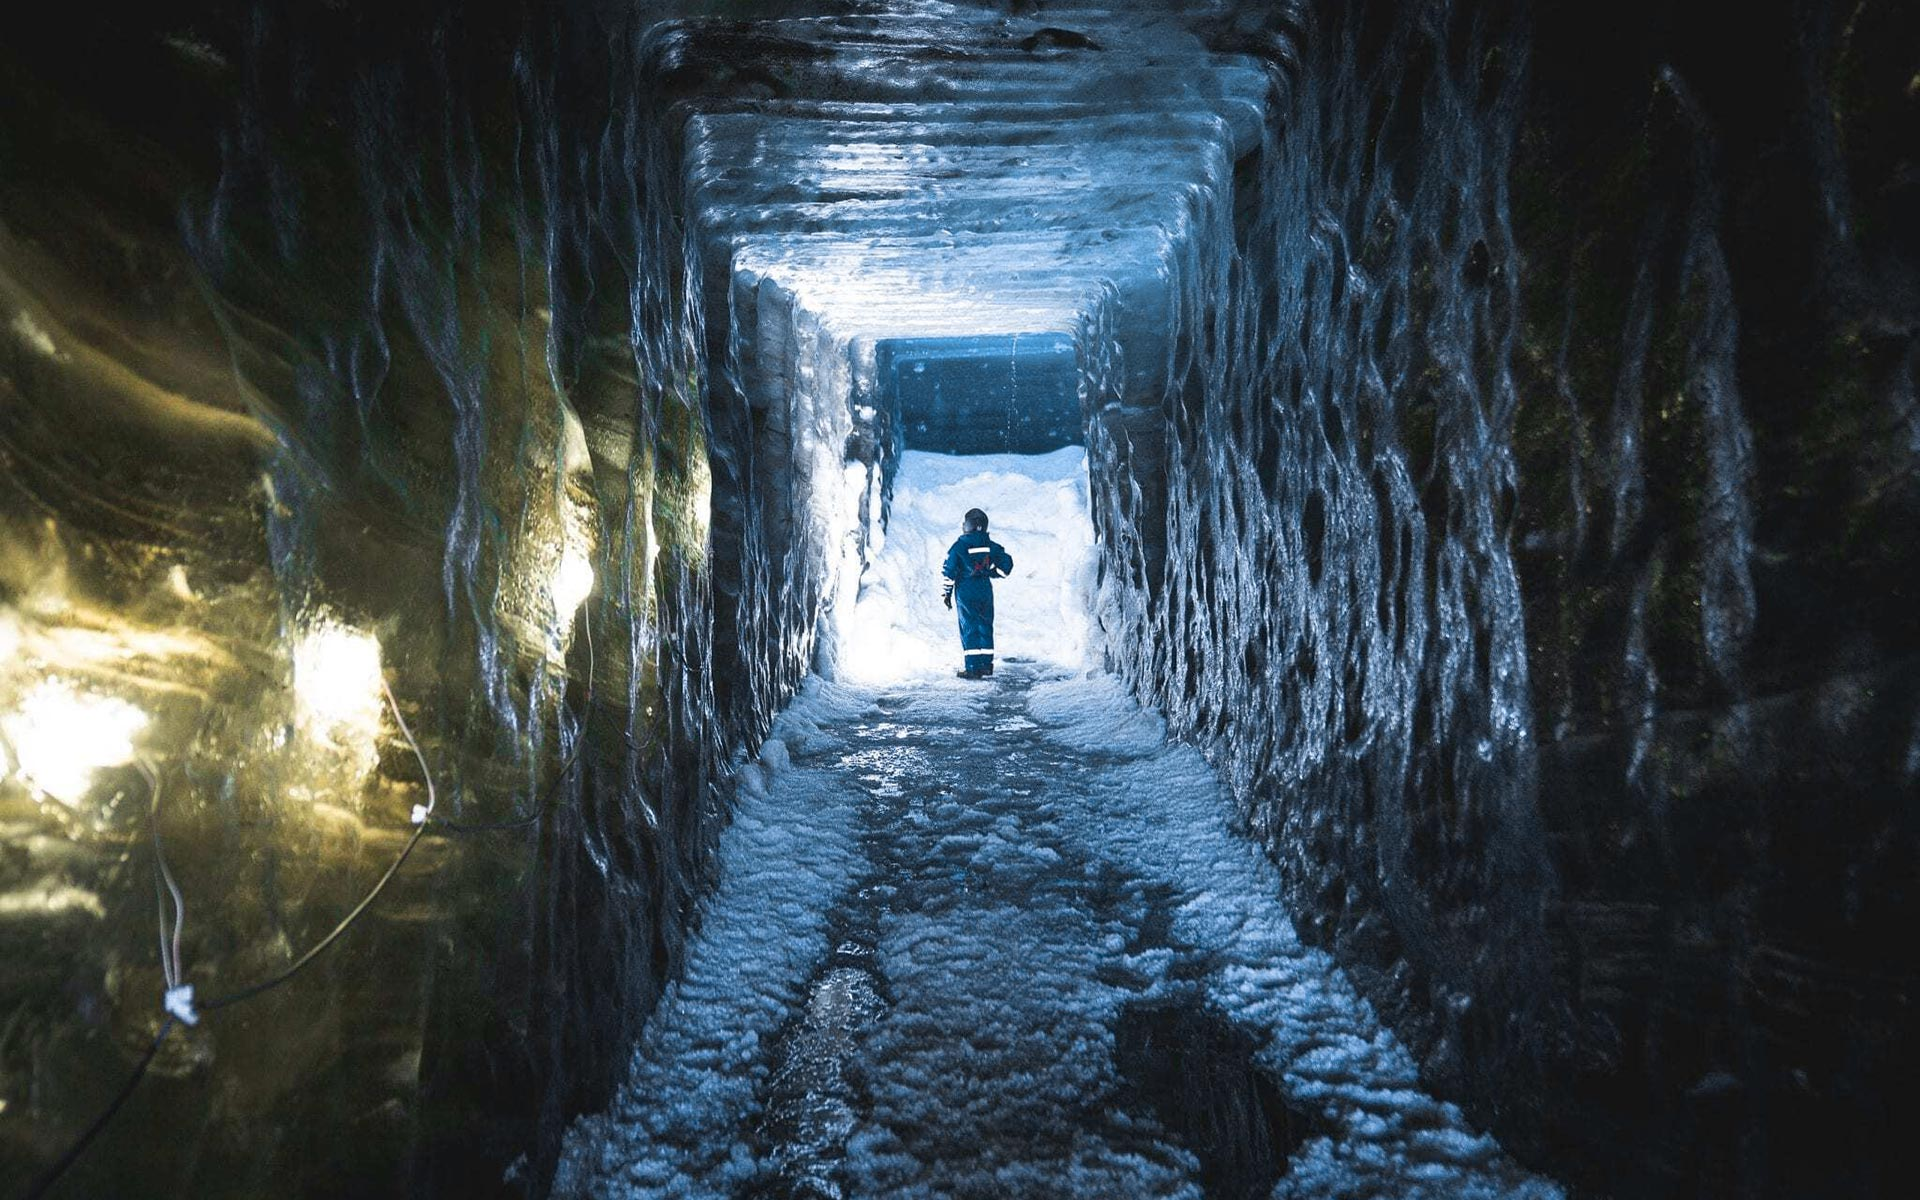 Exploring a man-made ice cave in Iceland